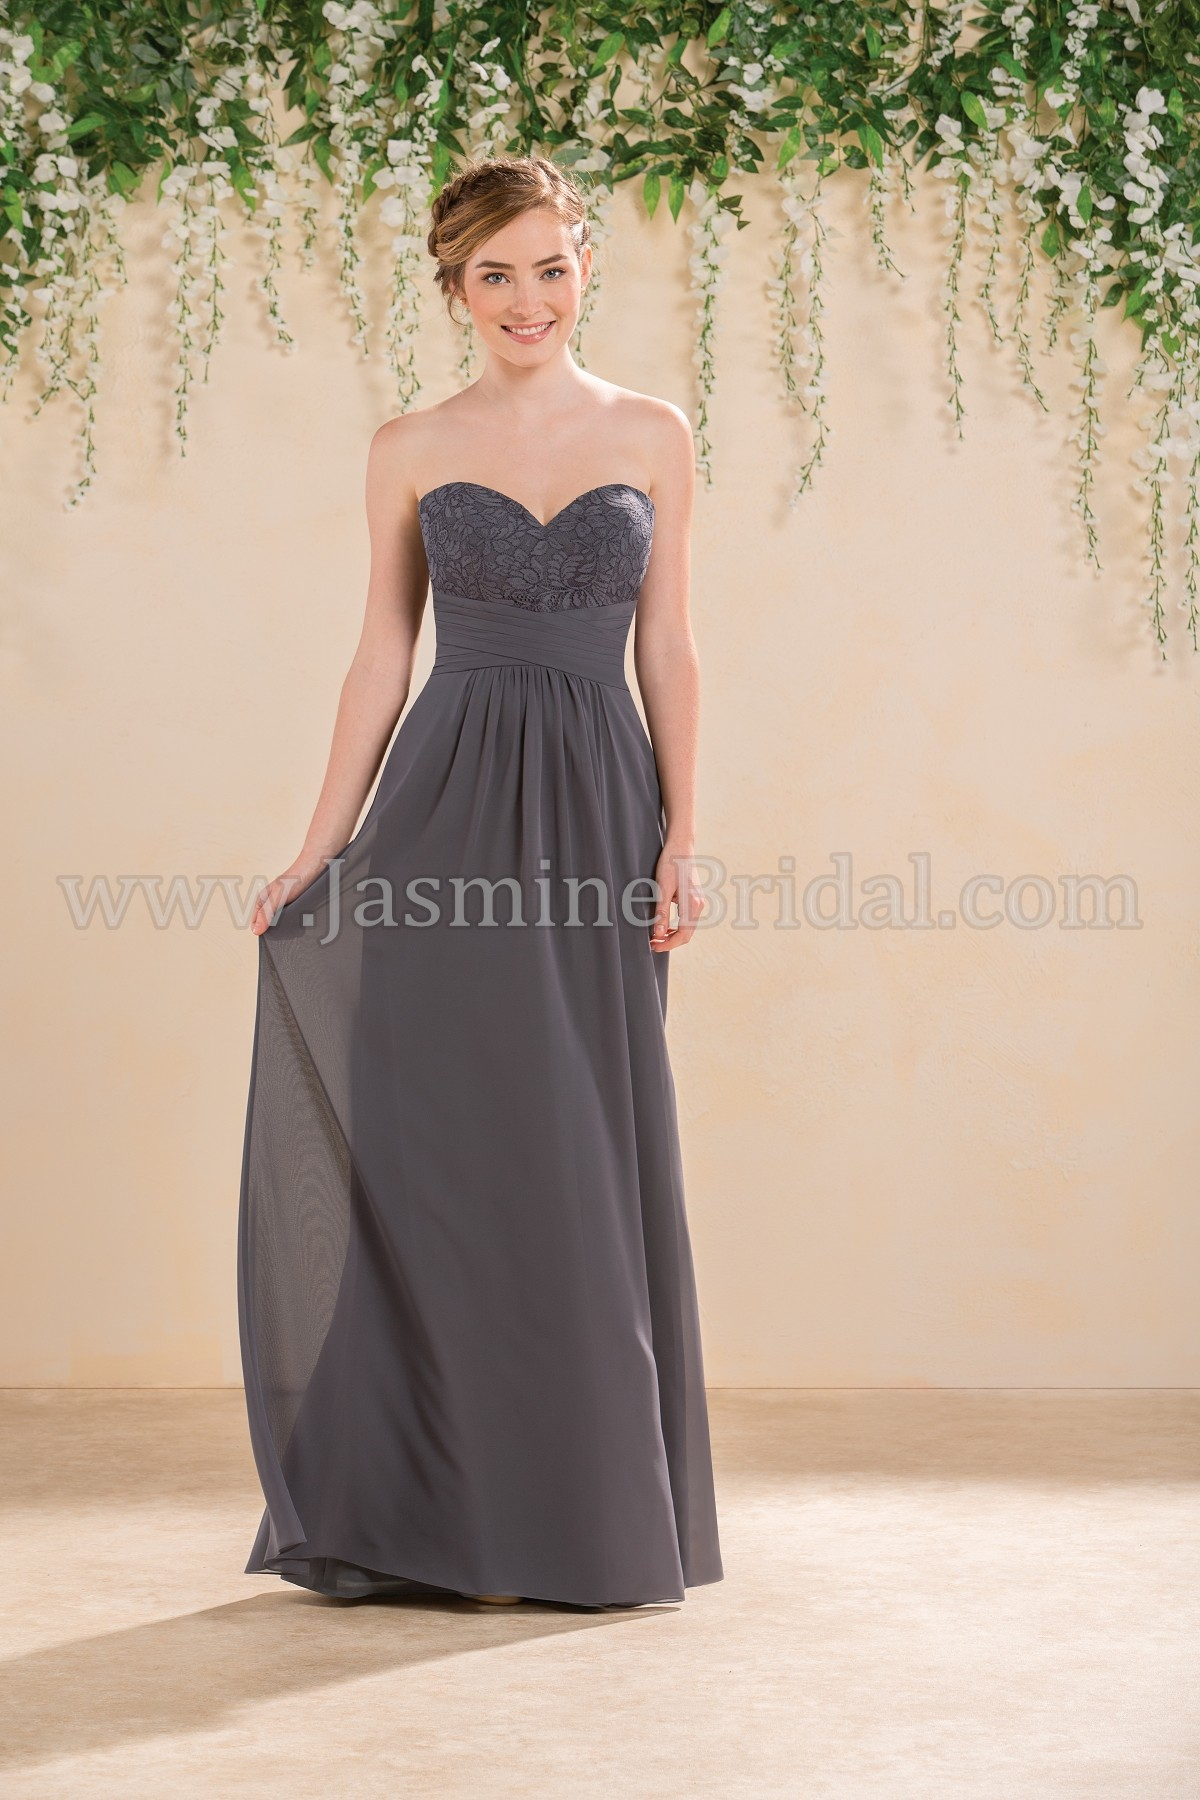 bridesmaid-dresses-B183015-F